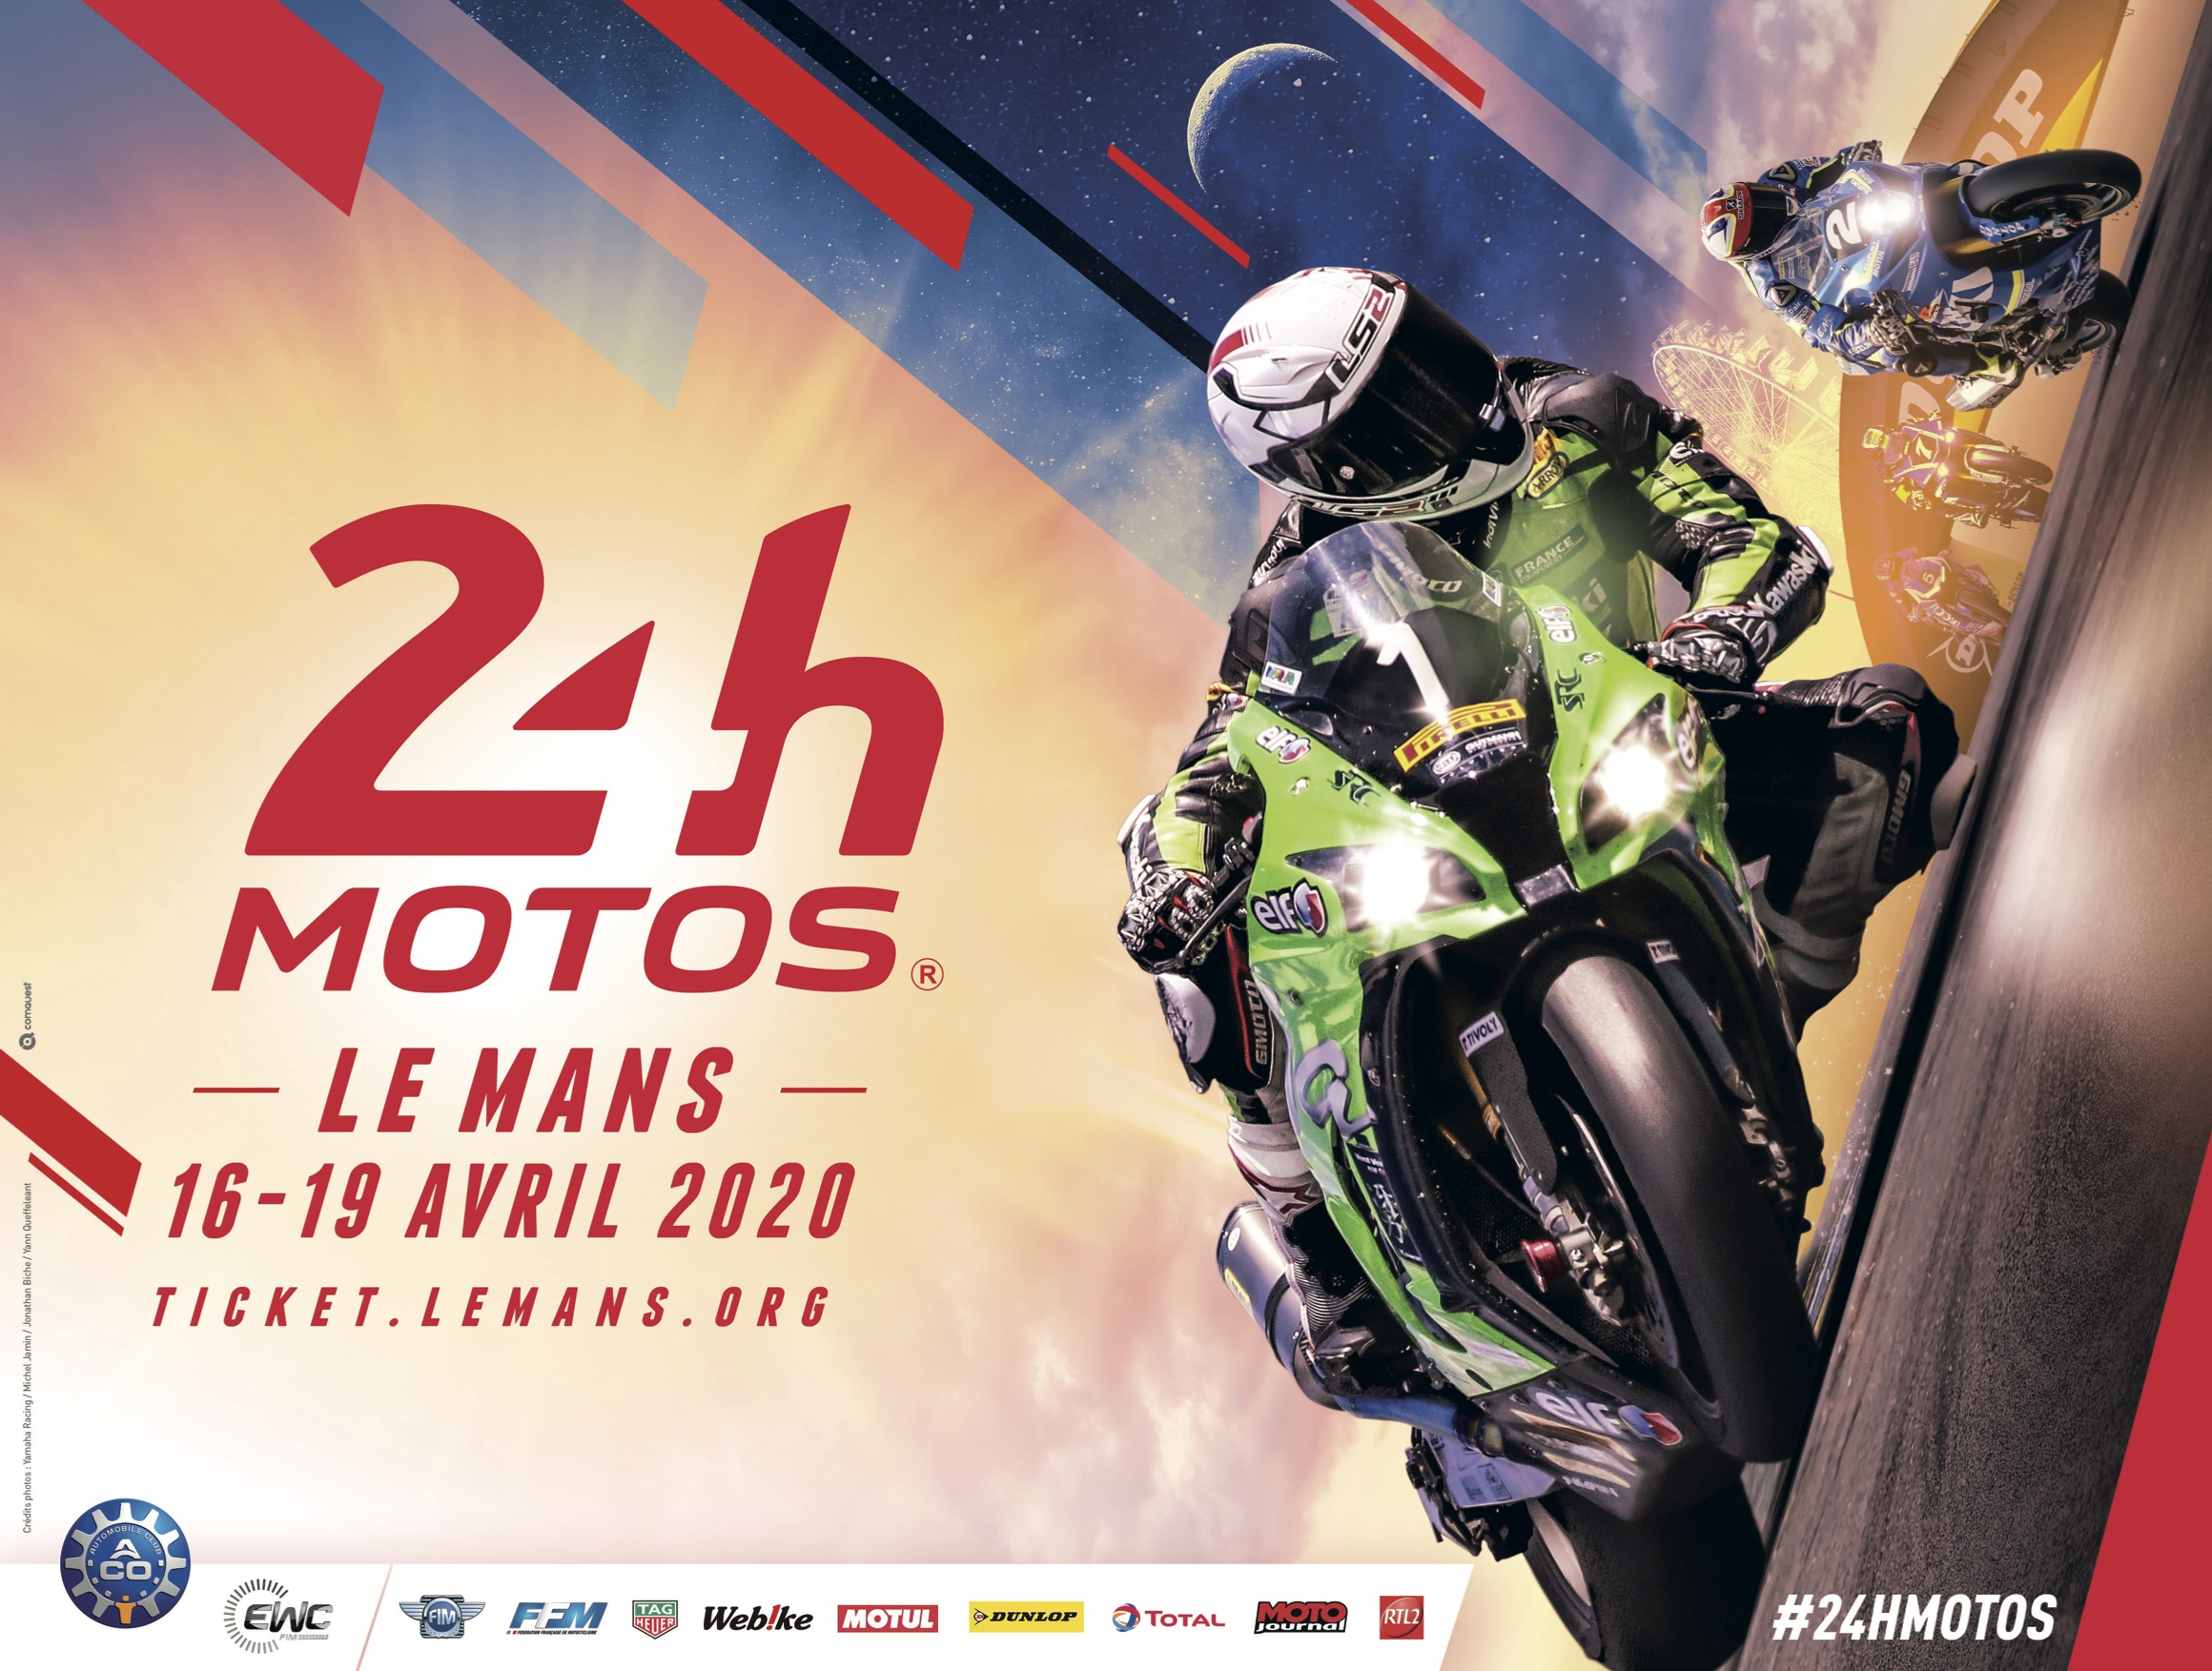 A first glimpse of the 2020 24 Heures Motos